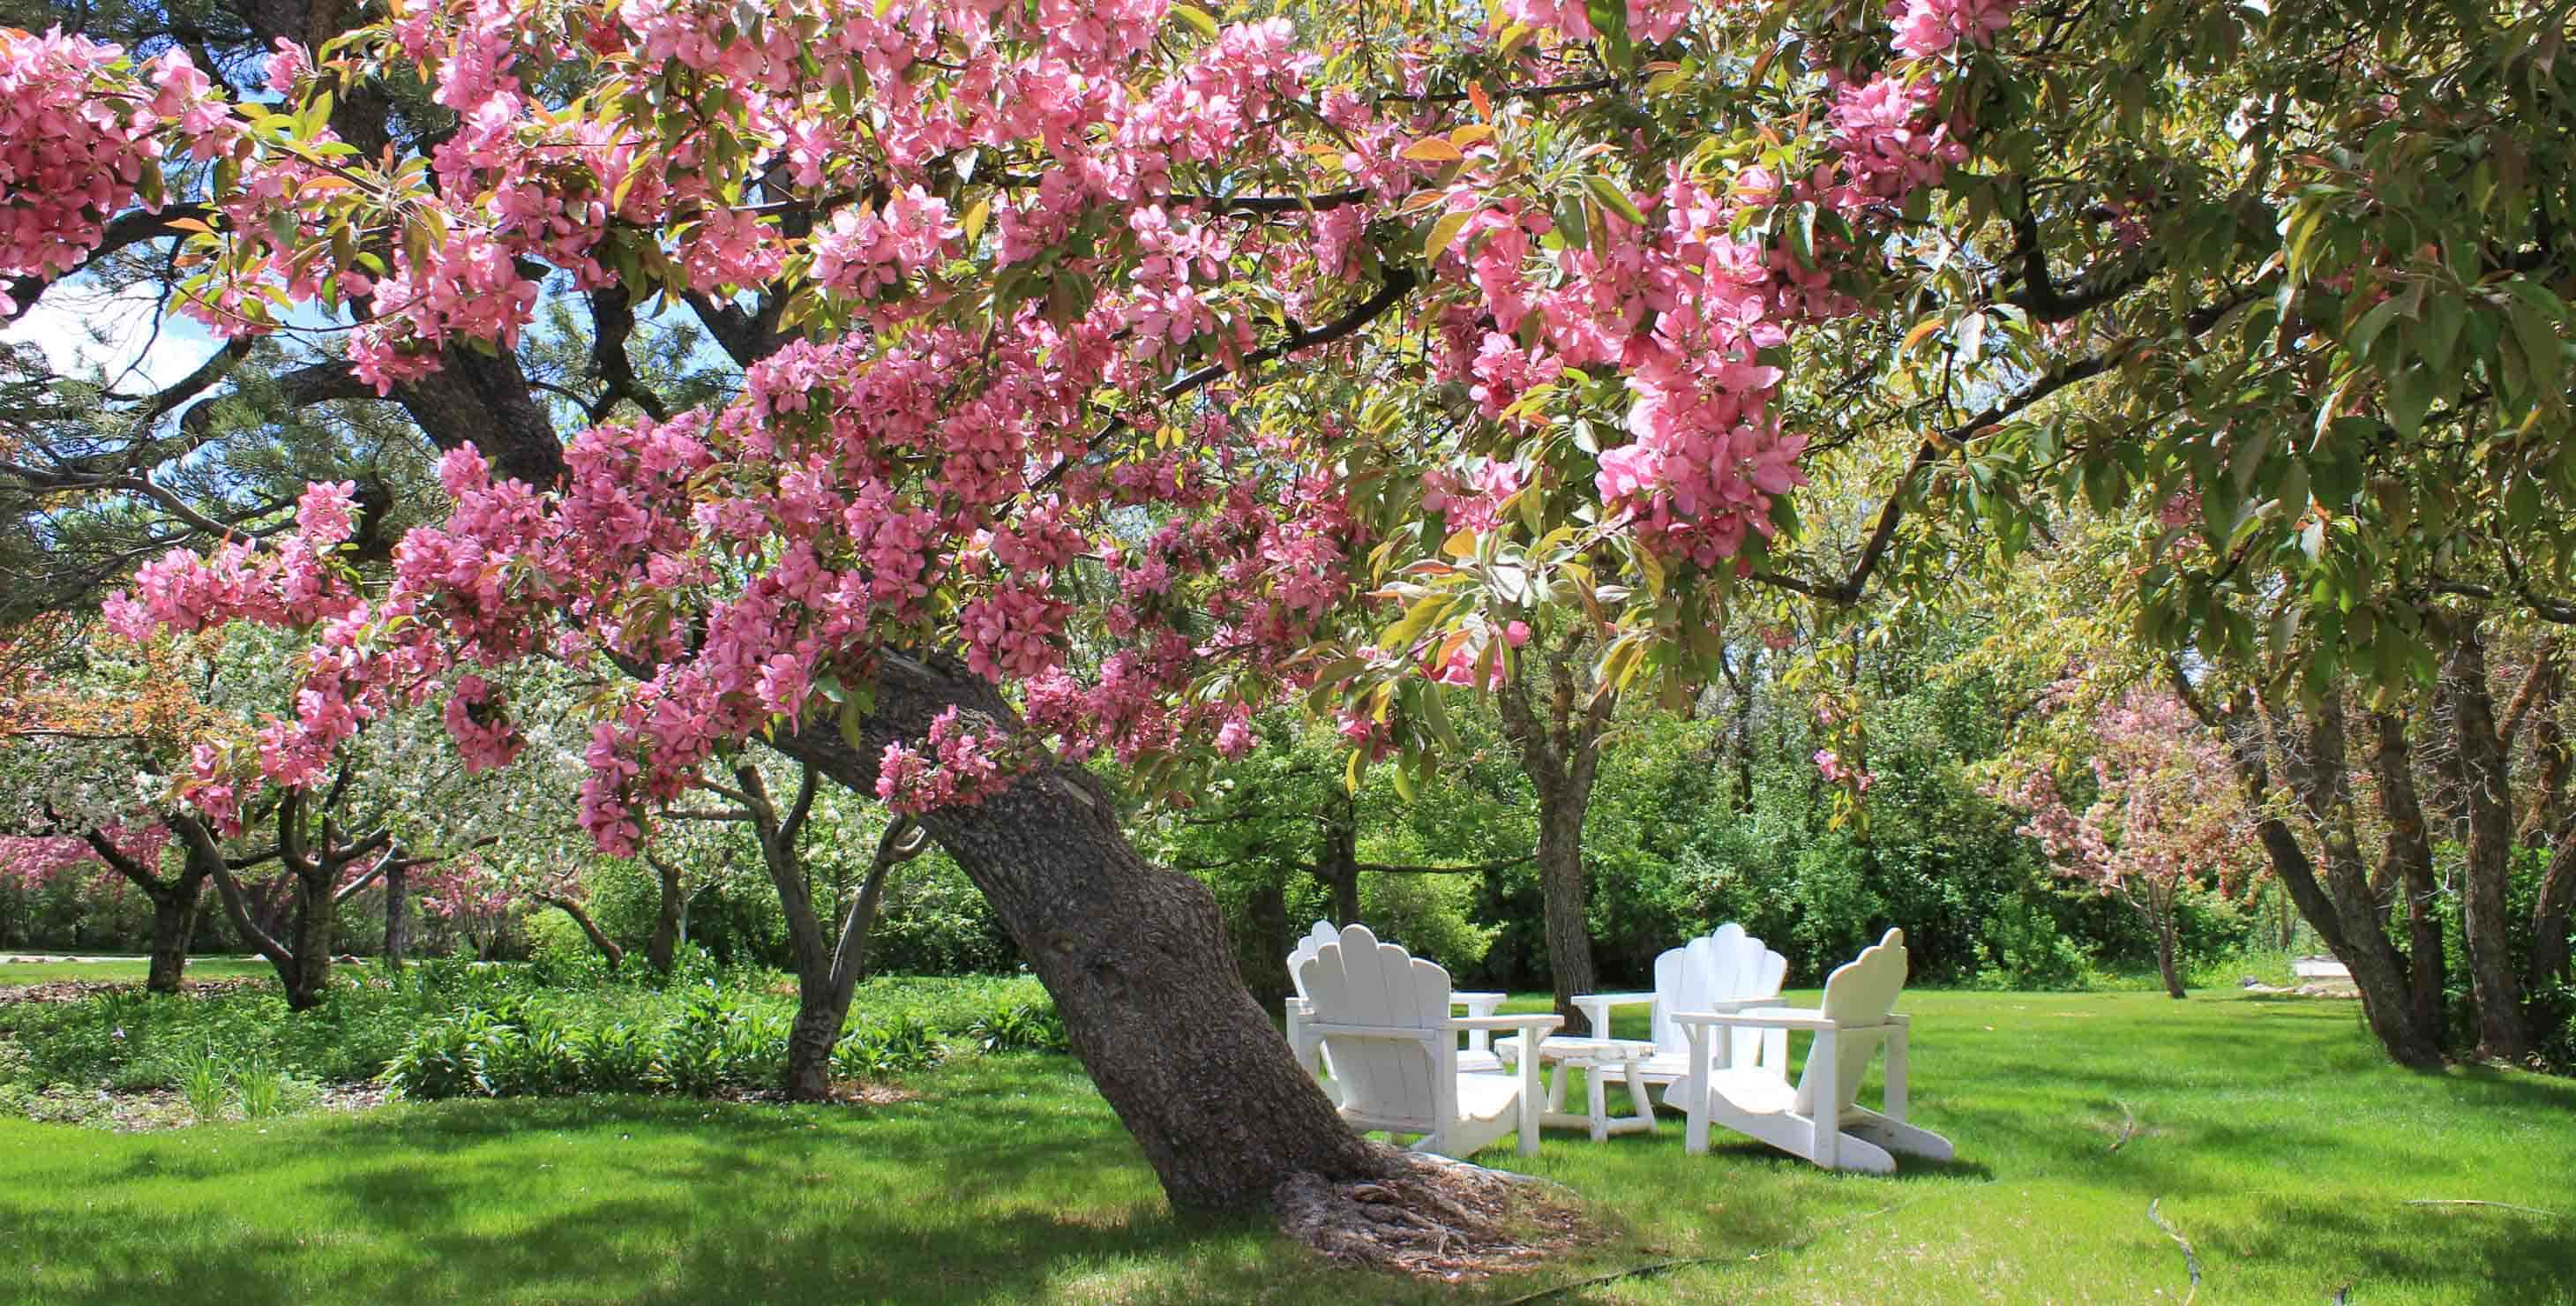 Private secluded lawn with trees in spring bloom